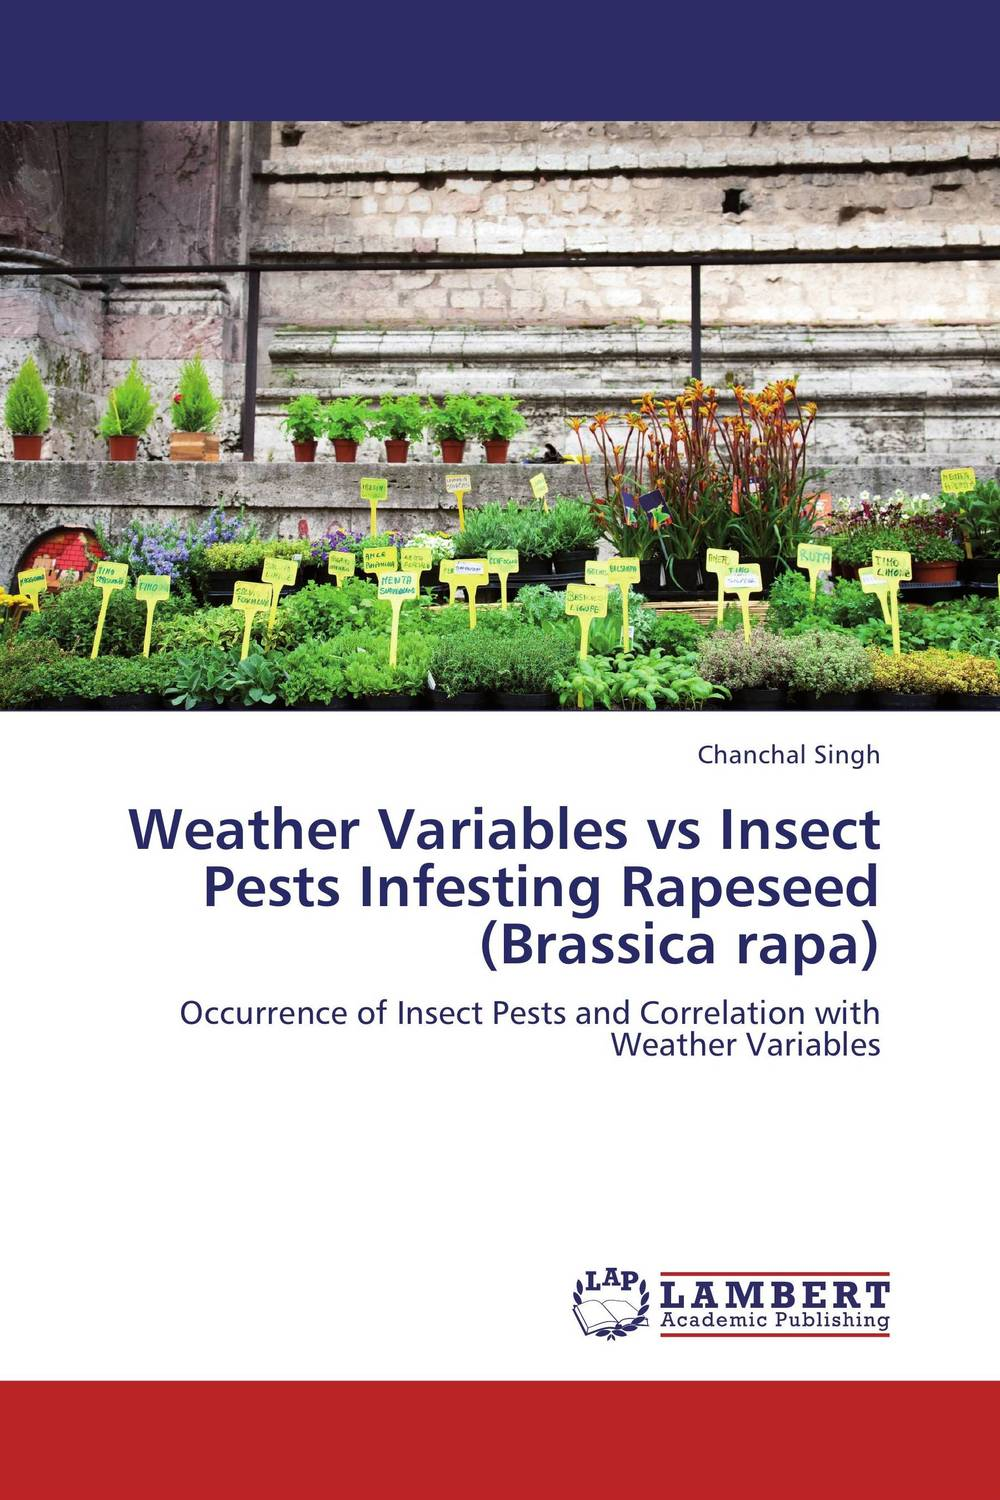 Weather Variables vs Insect Pests Infesting Rapeseed (Brassica rapa) мягкие игрушки plants vs zombies котенок 15 см